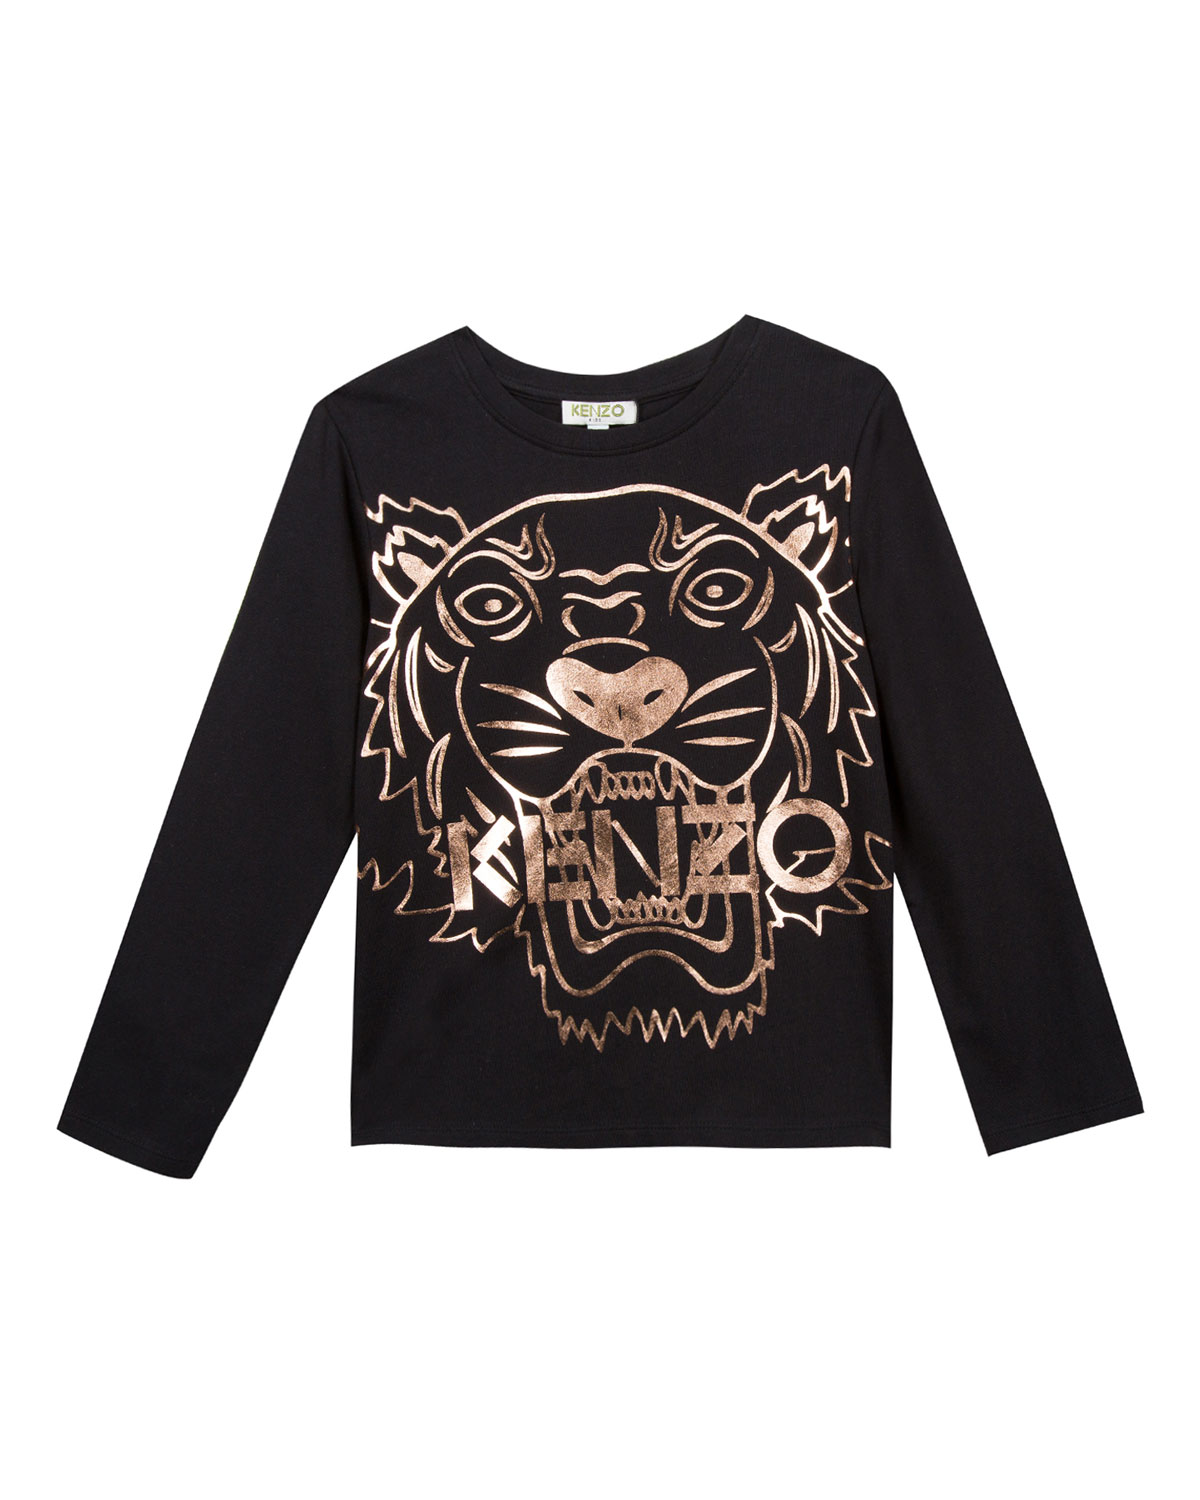 33ad8000f Kenzo Metallic Tiger Face Icon Long-Sleeve T-Shirt, Size 14-16 ...